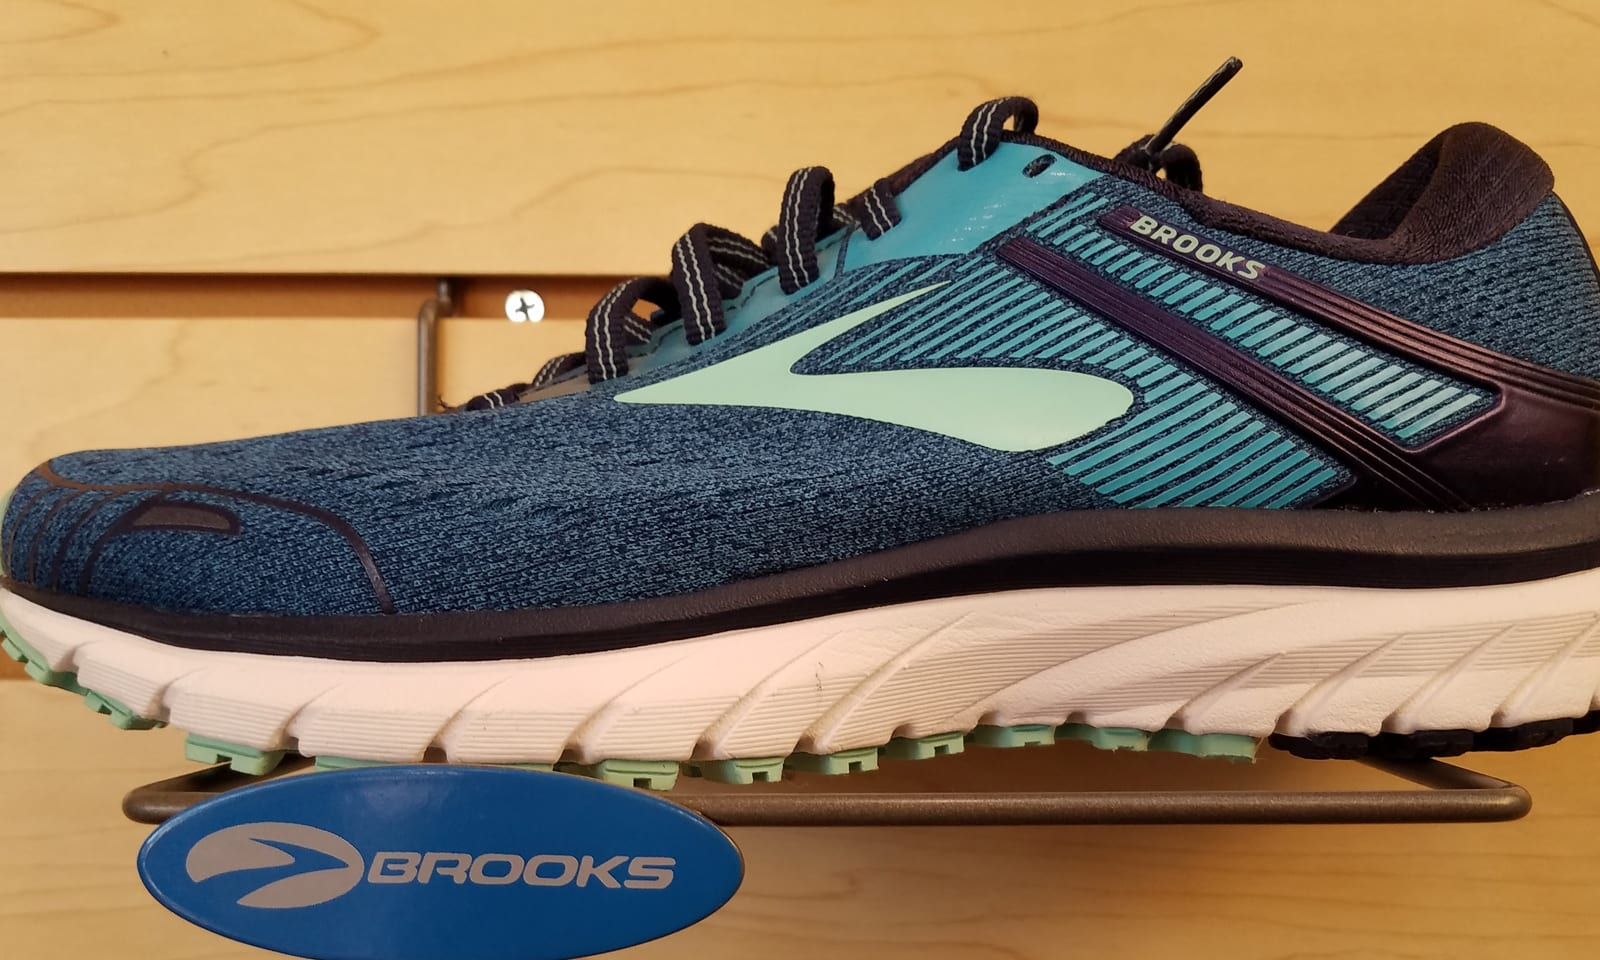 10 Brooks Running Shoes [ 2020 Reviews